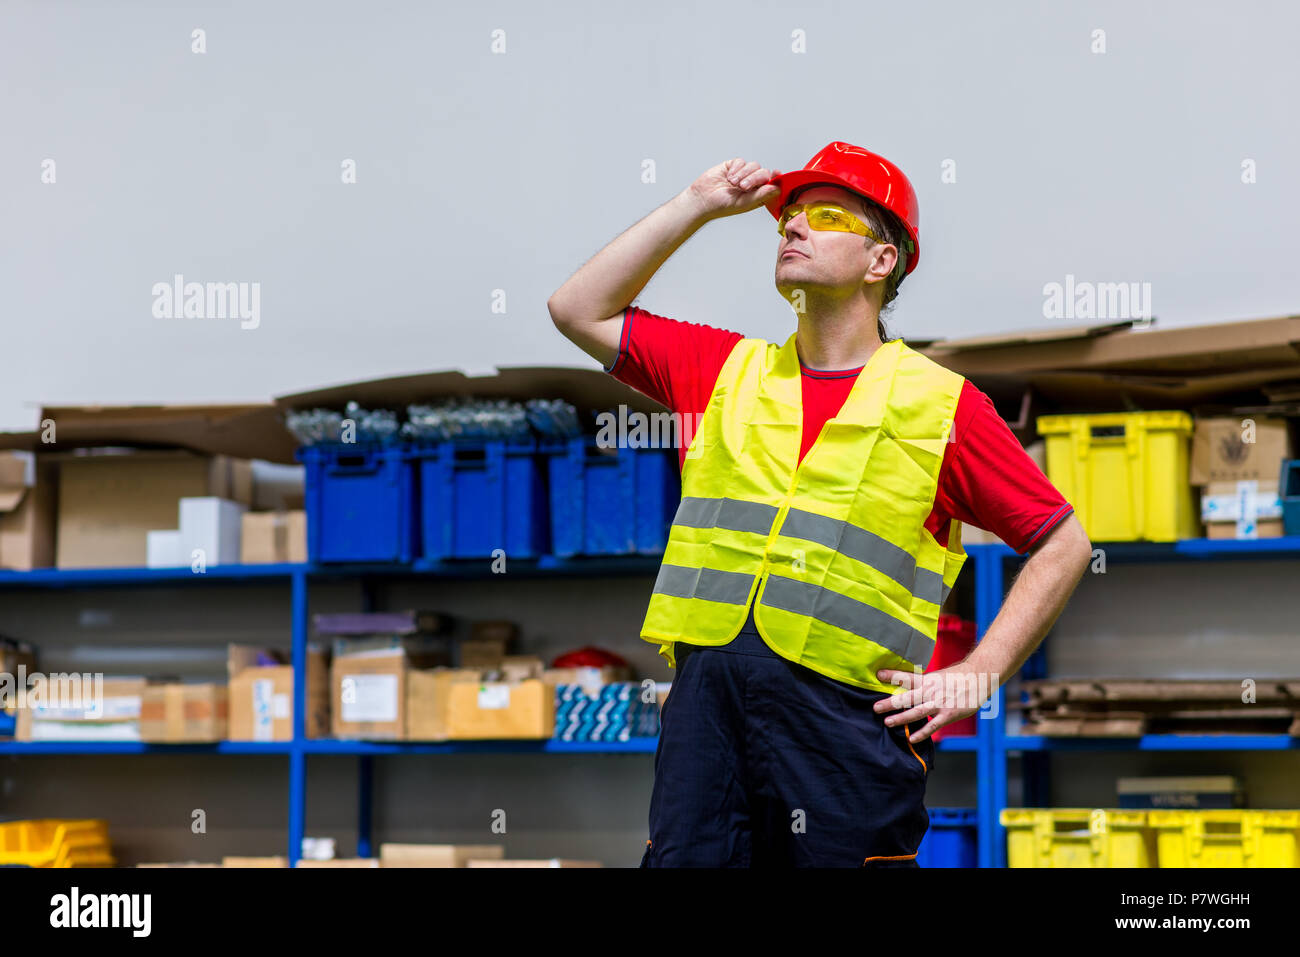 Factory worker wearing yellow reflective west, yellow safety glasses and red helmet. Factory worker looking up with one hand on his helmet - Stock Image